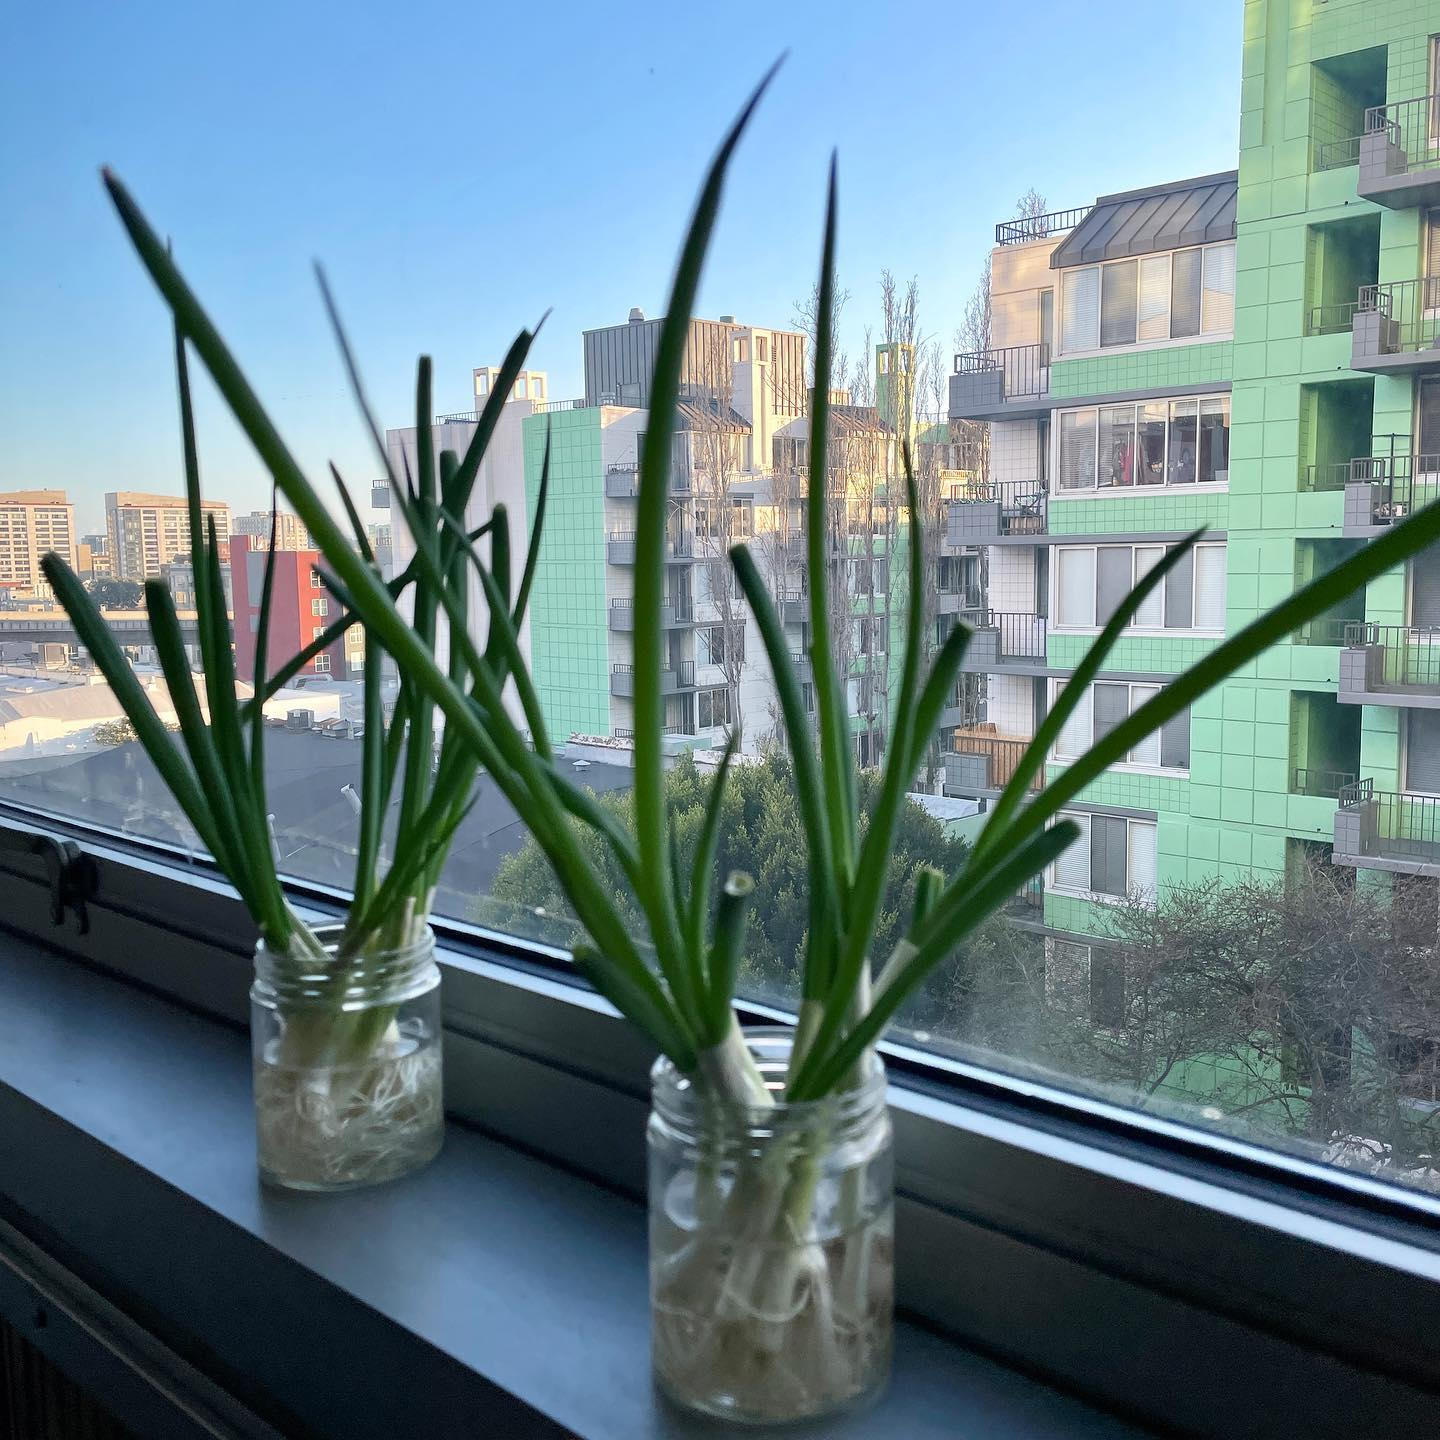 Simple urban garden with @maxkiesler's green onions. We just harvested last week's growth and made green onion pancakes. 😀